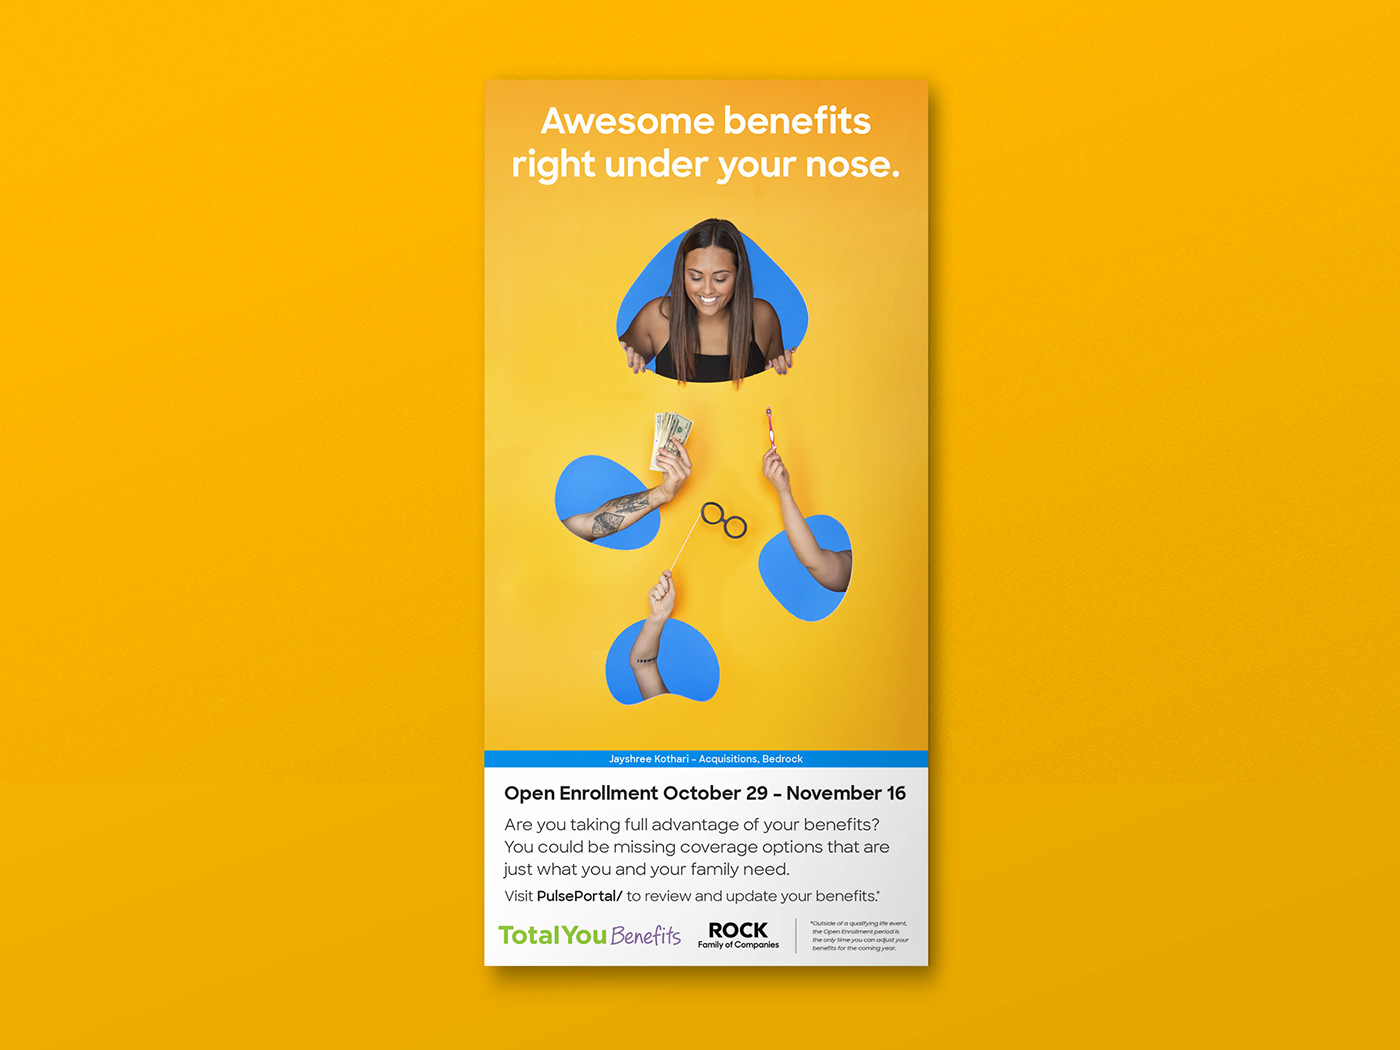 benefits Health campaign colorful photoshoot Email poster Wellness design simple